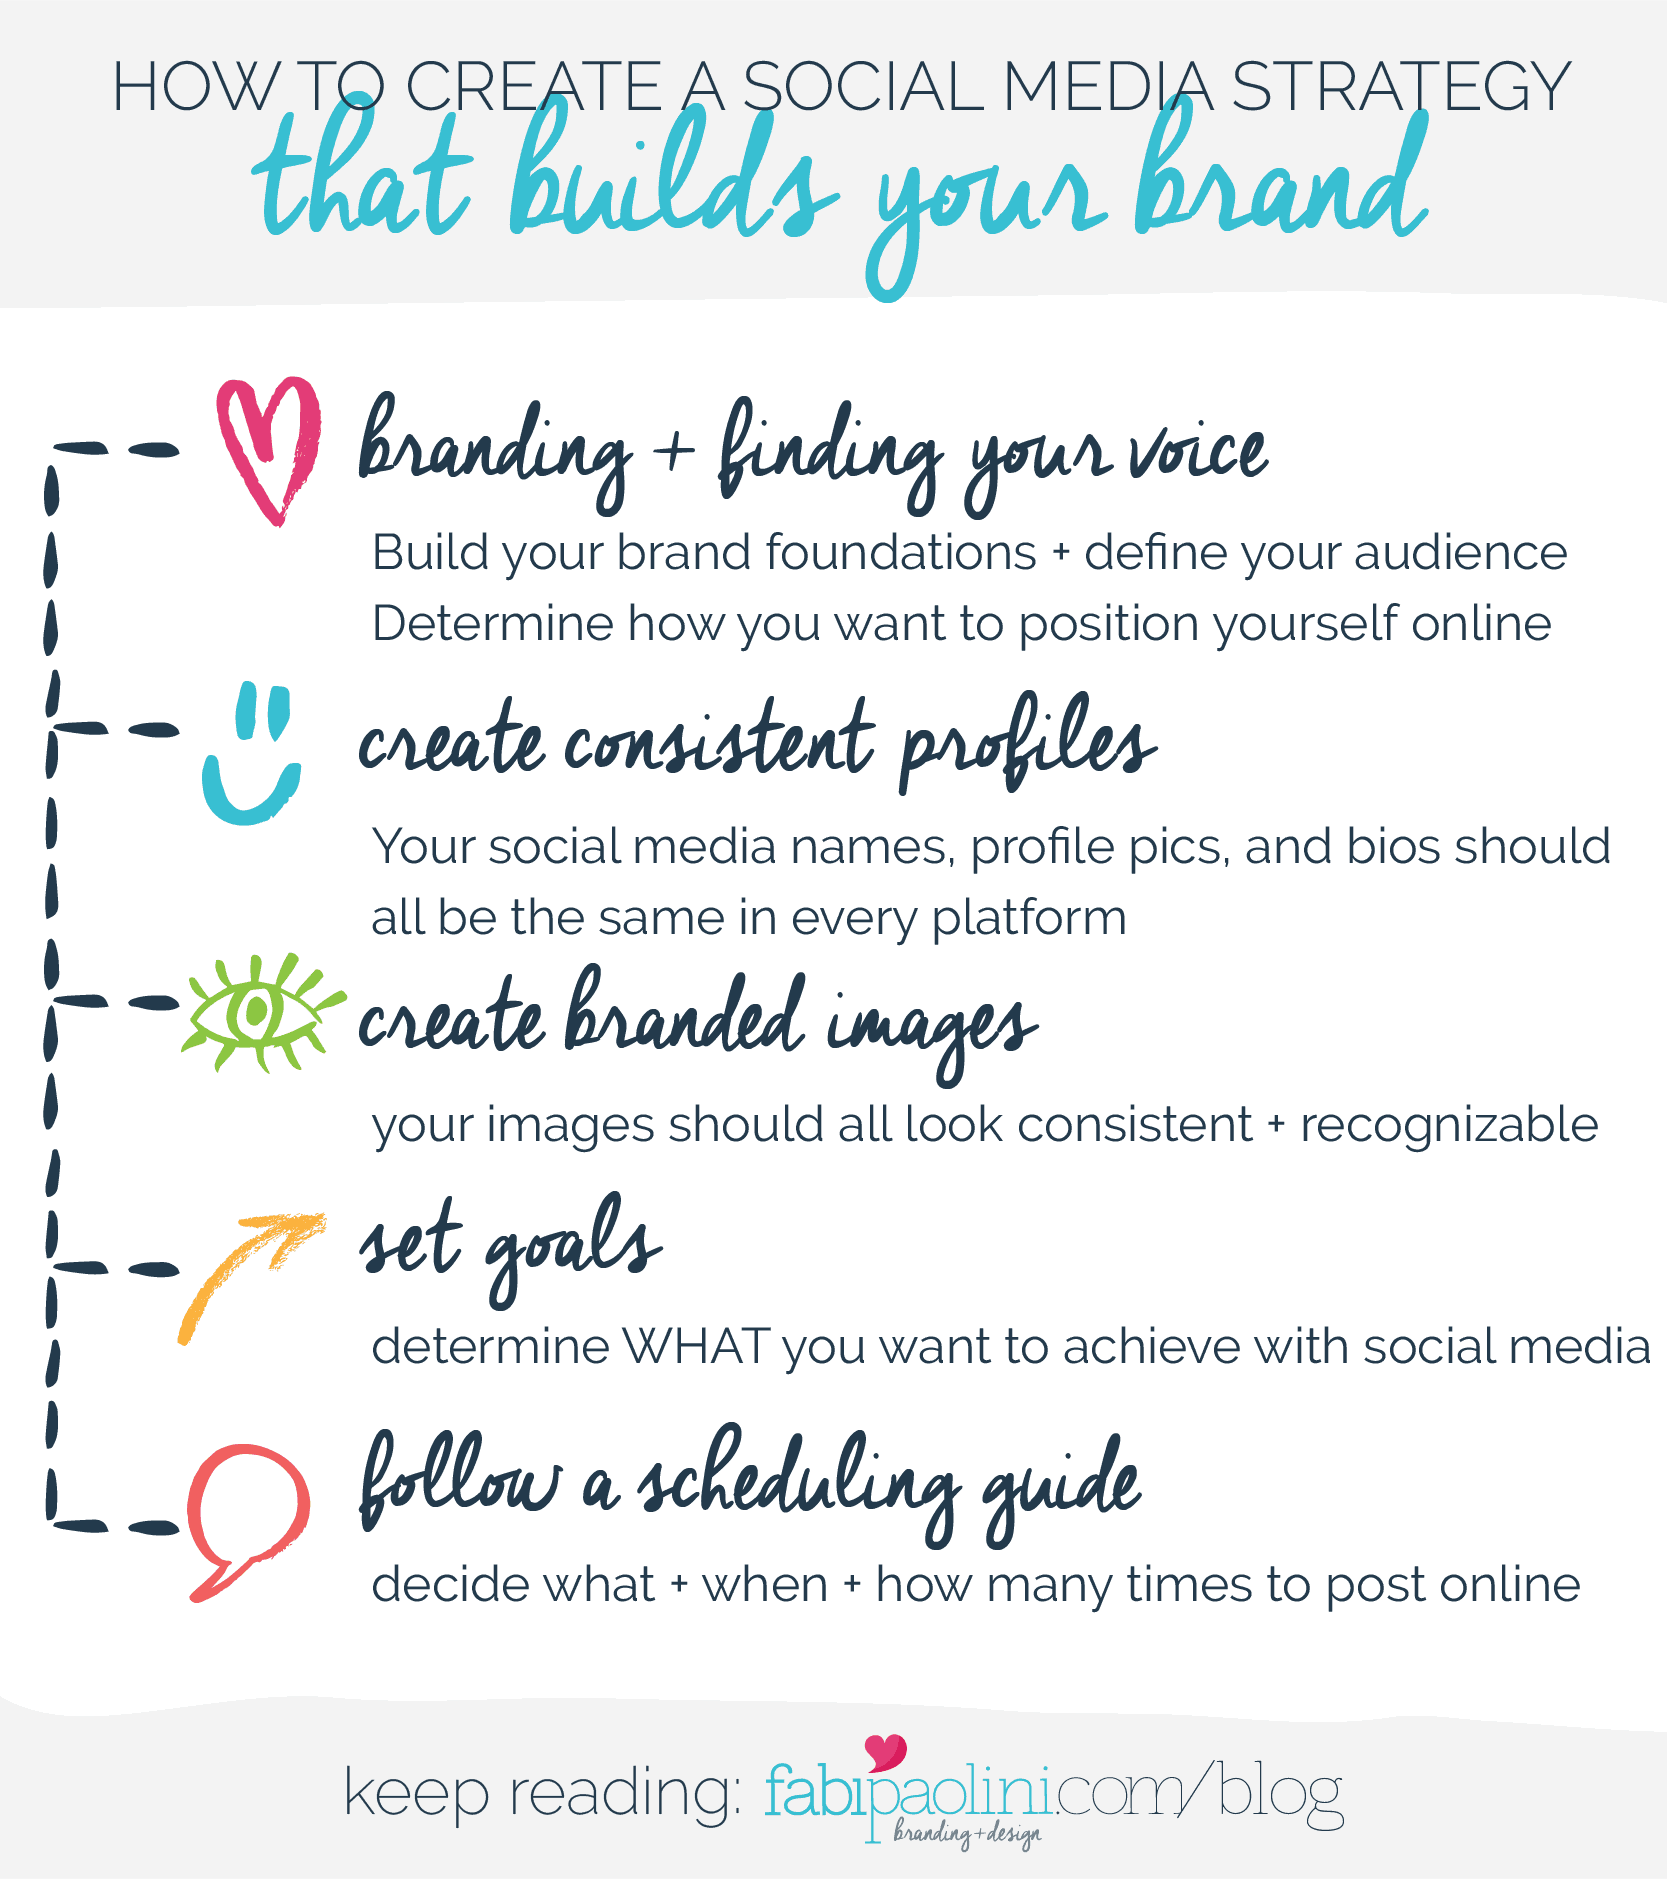 How to create a simple social media strategy to build your brand online. Check this out!